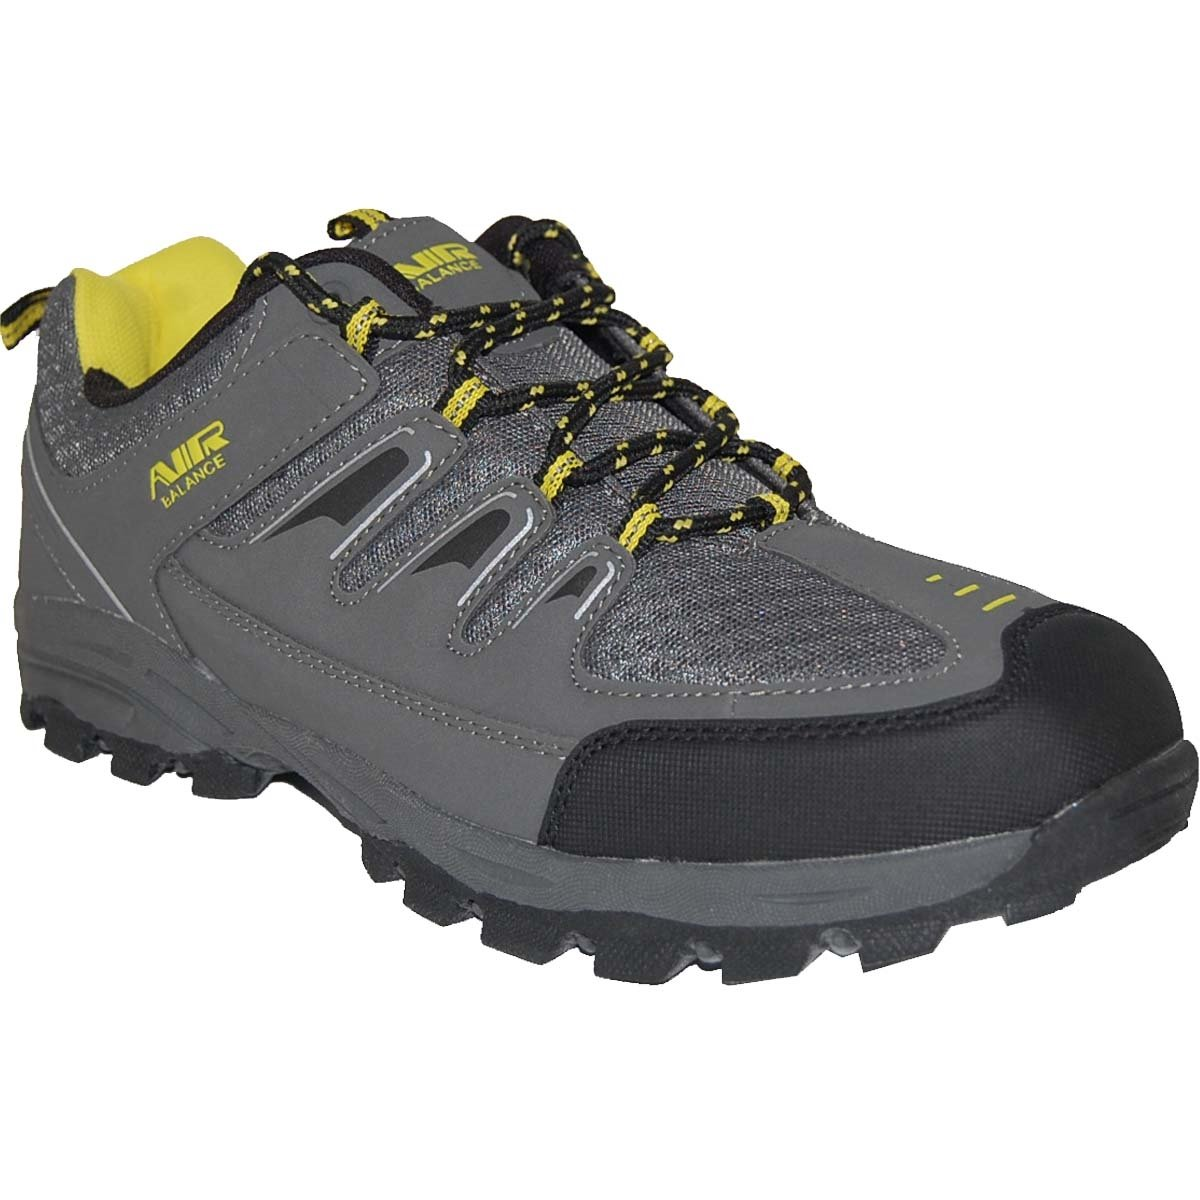 KRAZY SHOE ARTISTS Rugged Hiker Men's Outdoor Lace Up Shoes -Size 9-5